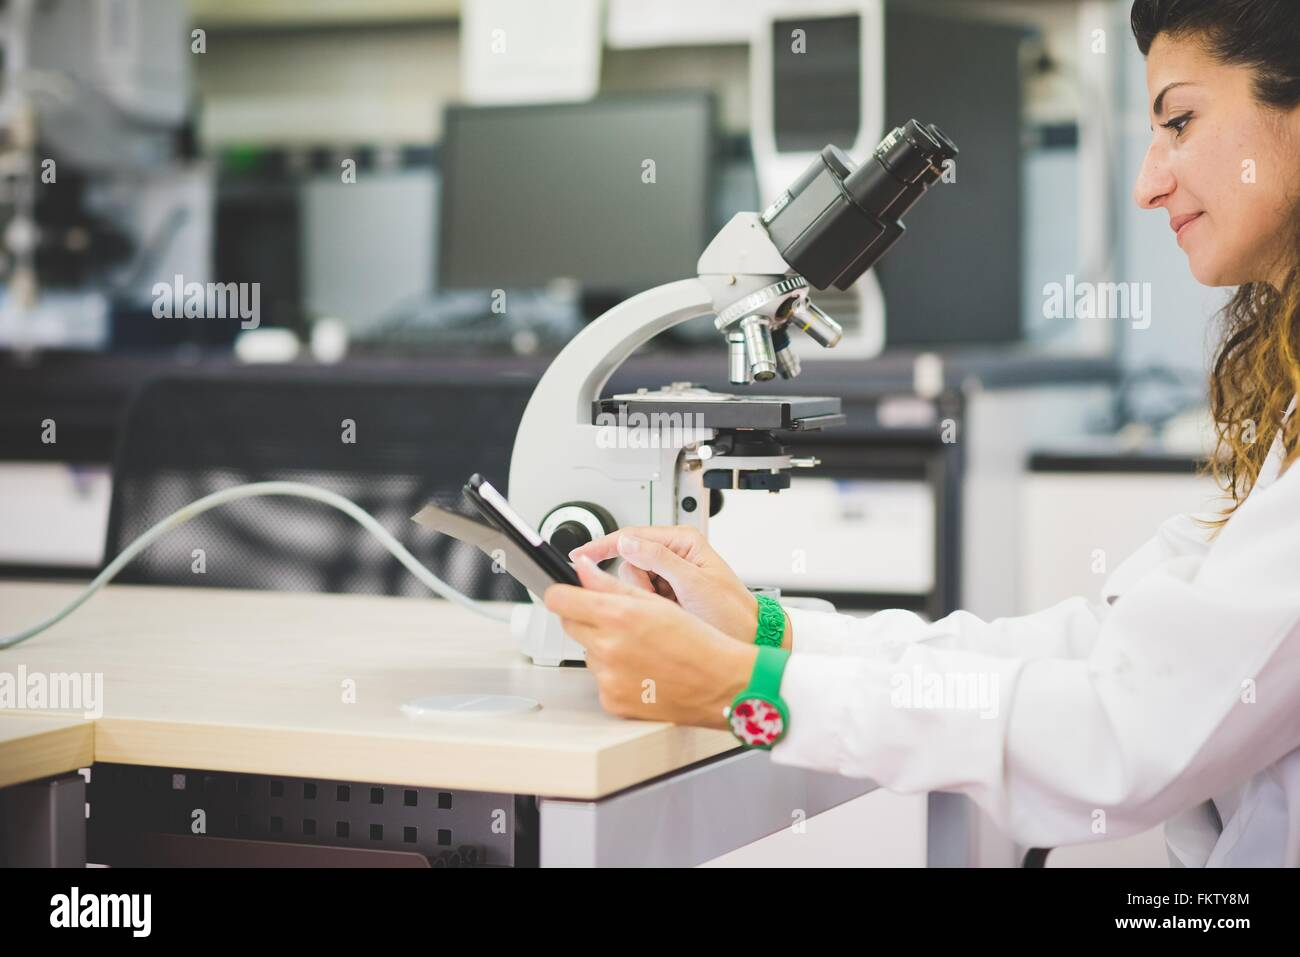 Female scientist using digital tablet and optical microscope - Stock Image